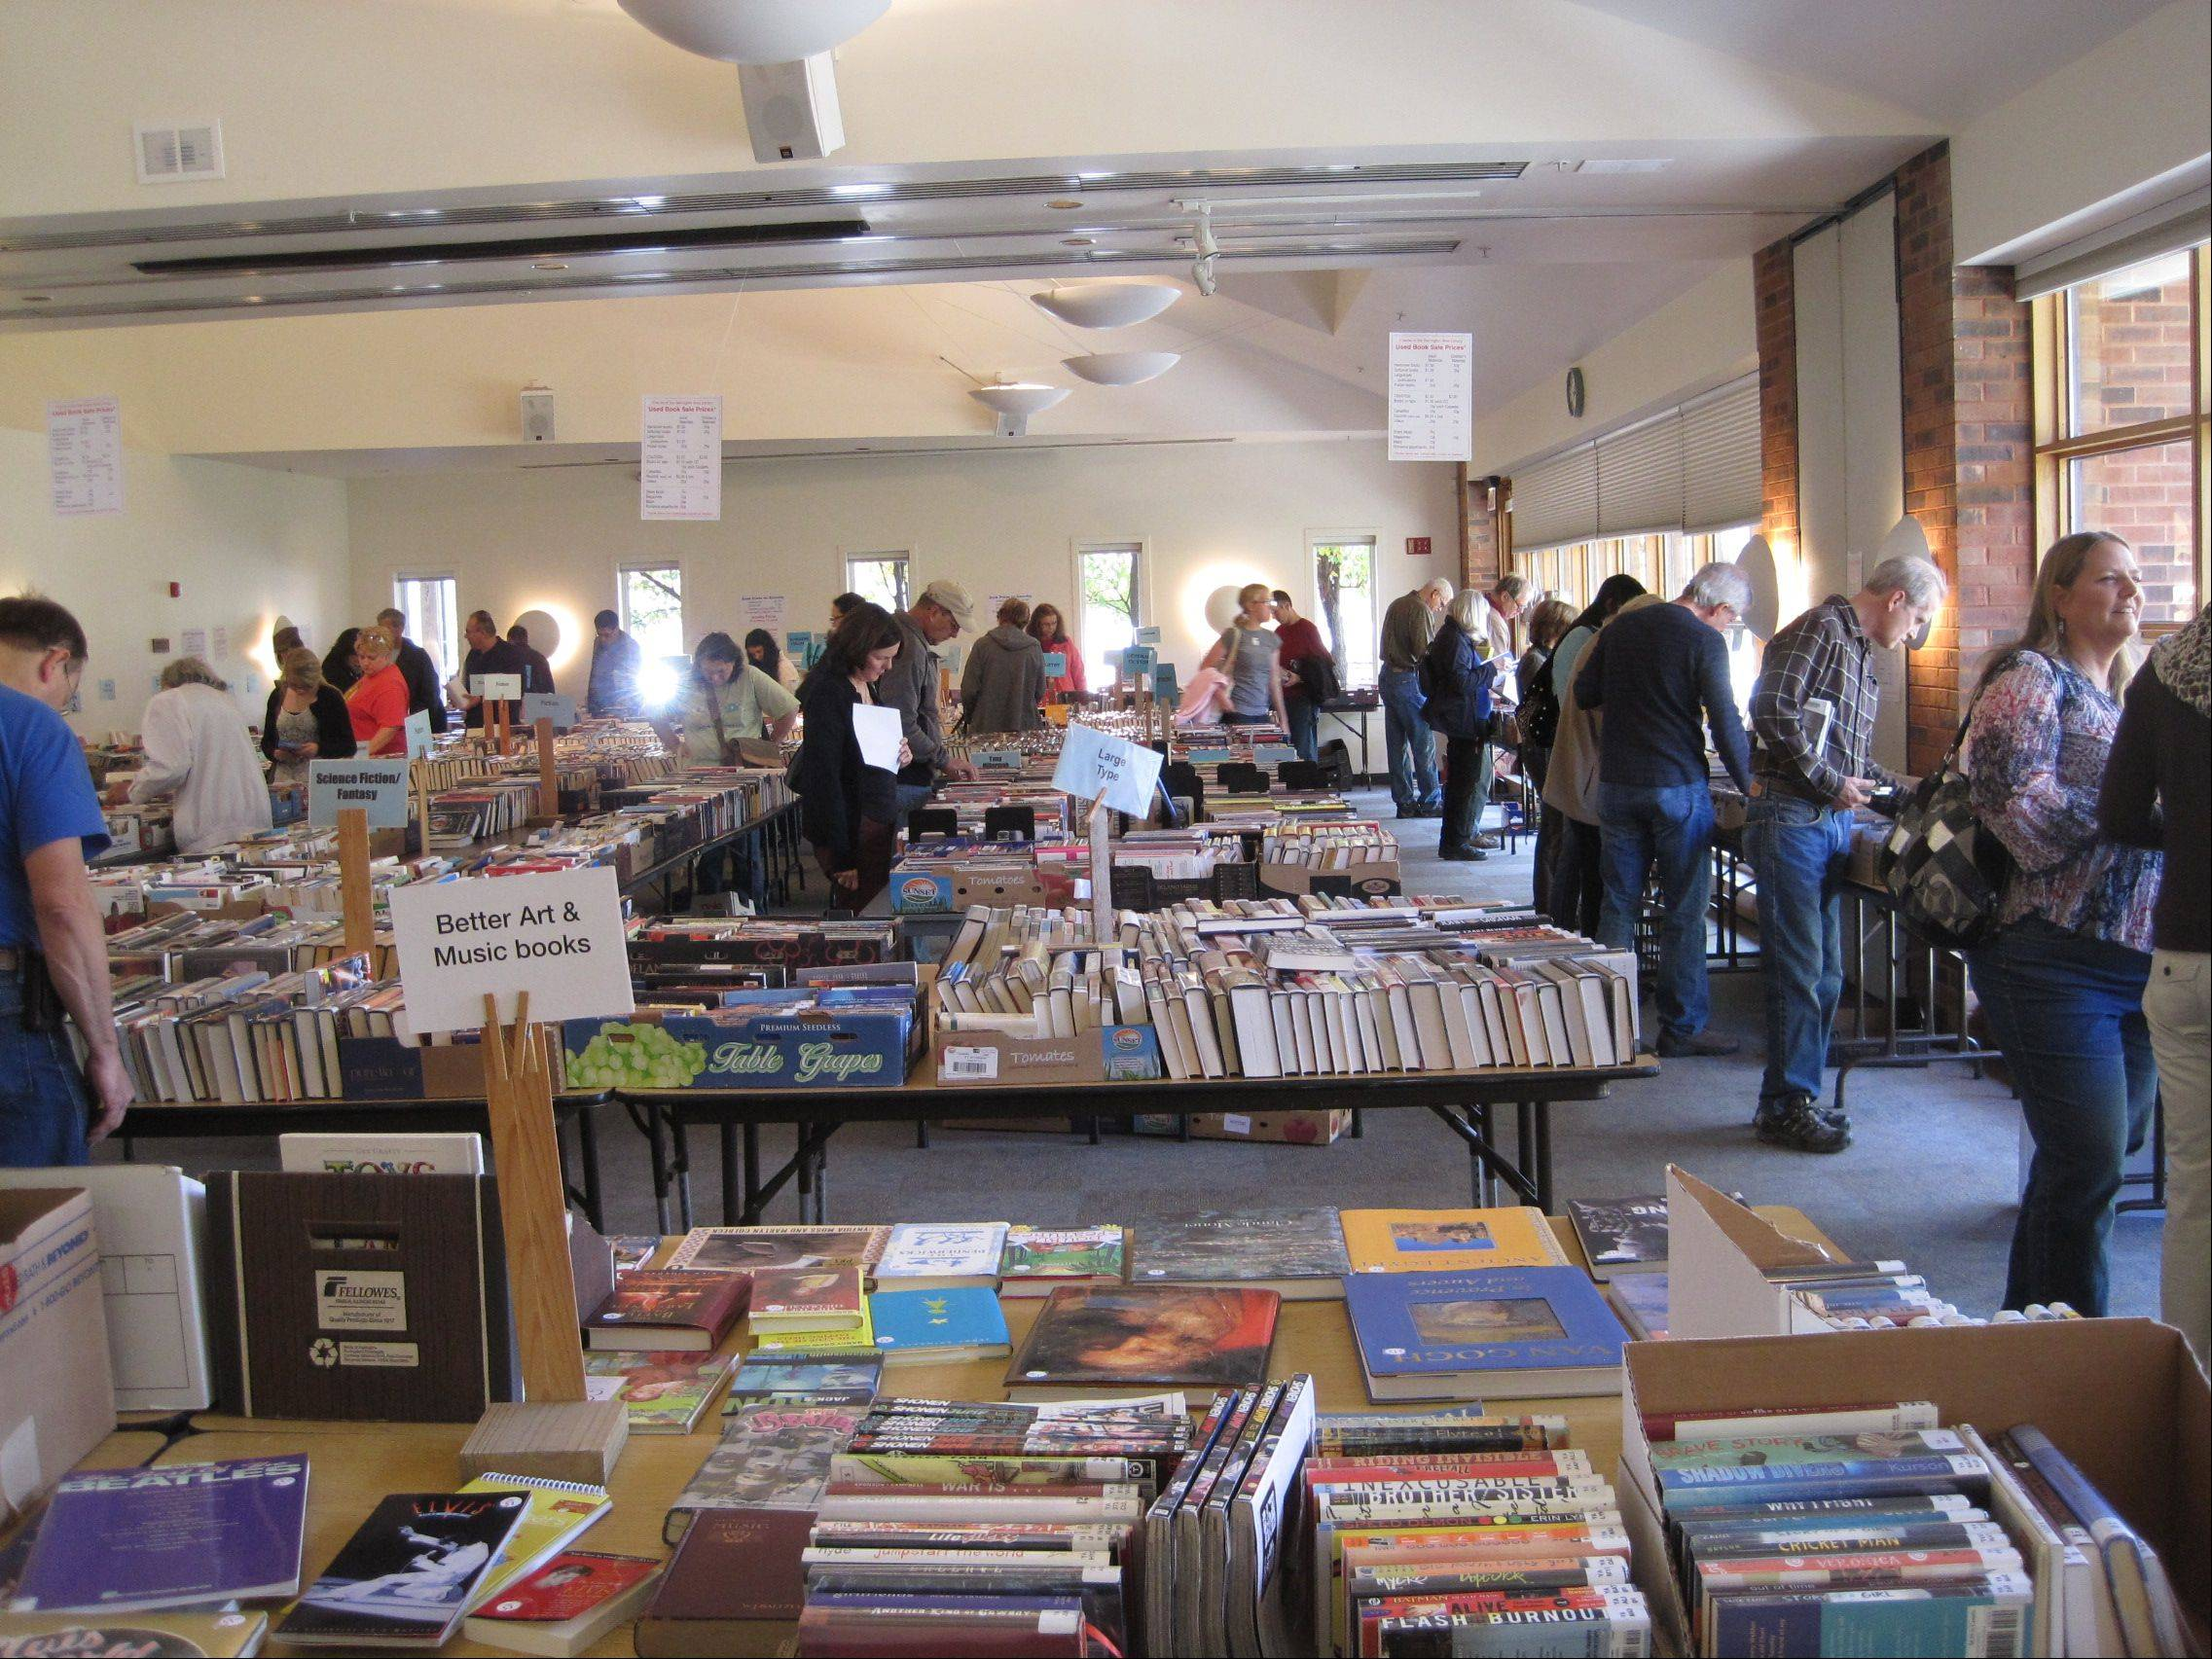 Attendance at the Friends of the Barrington Area Library book sale Saturday and Sunday was down from past years, organization members said.